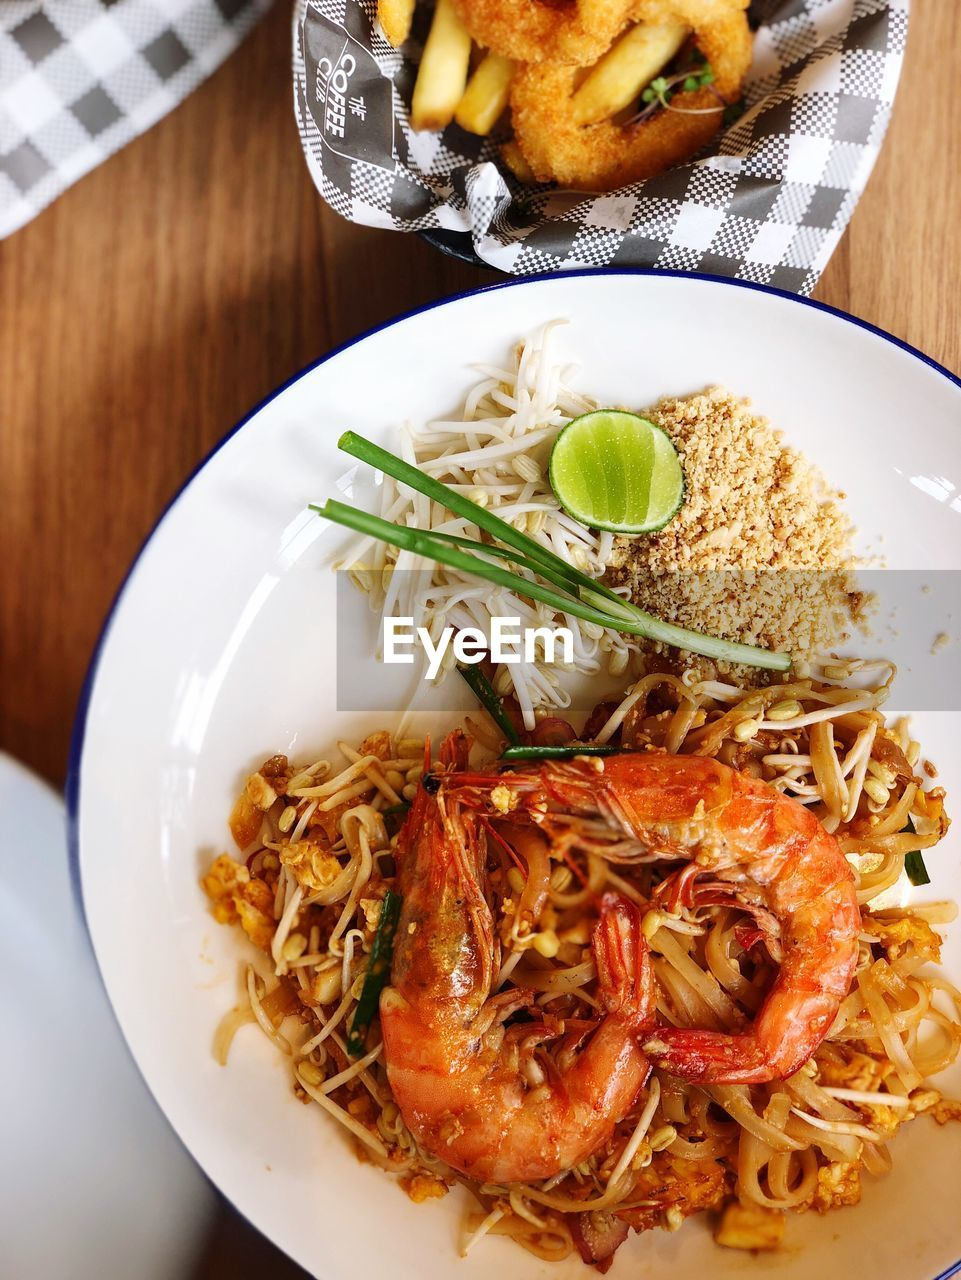 food, food and drink, ready-to-eat, freshness, plate, pasta, table, serving size, healthy eating, italian food, seafood, wellbeing, indoors, close-up, meal, no people, high angle view, still life, crustacean, shrimp - seafood, dinner, spaghetti, garnish, temptation, crockery